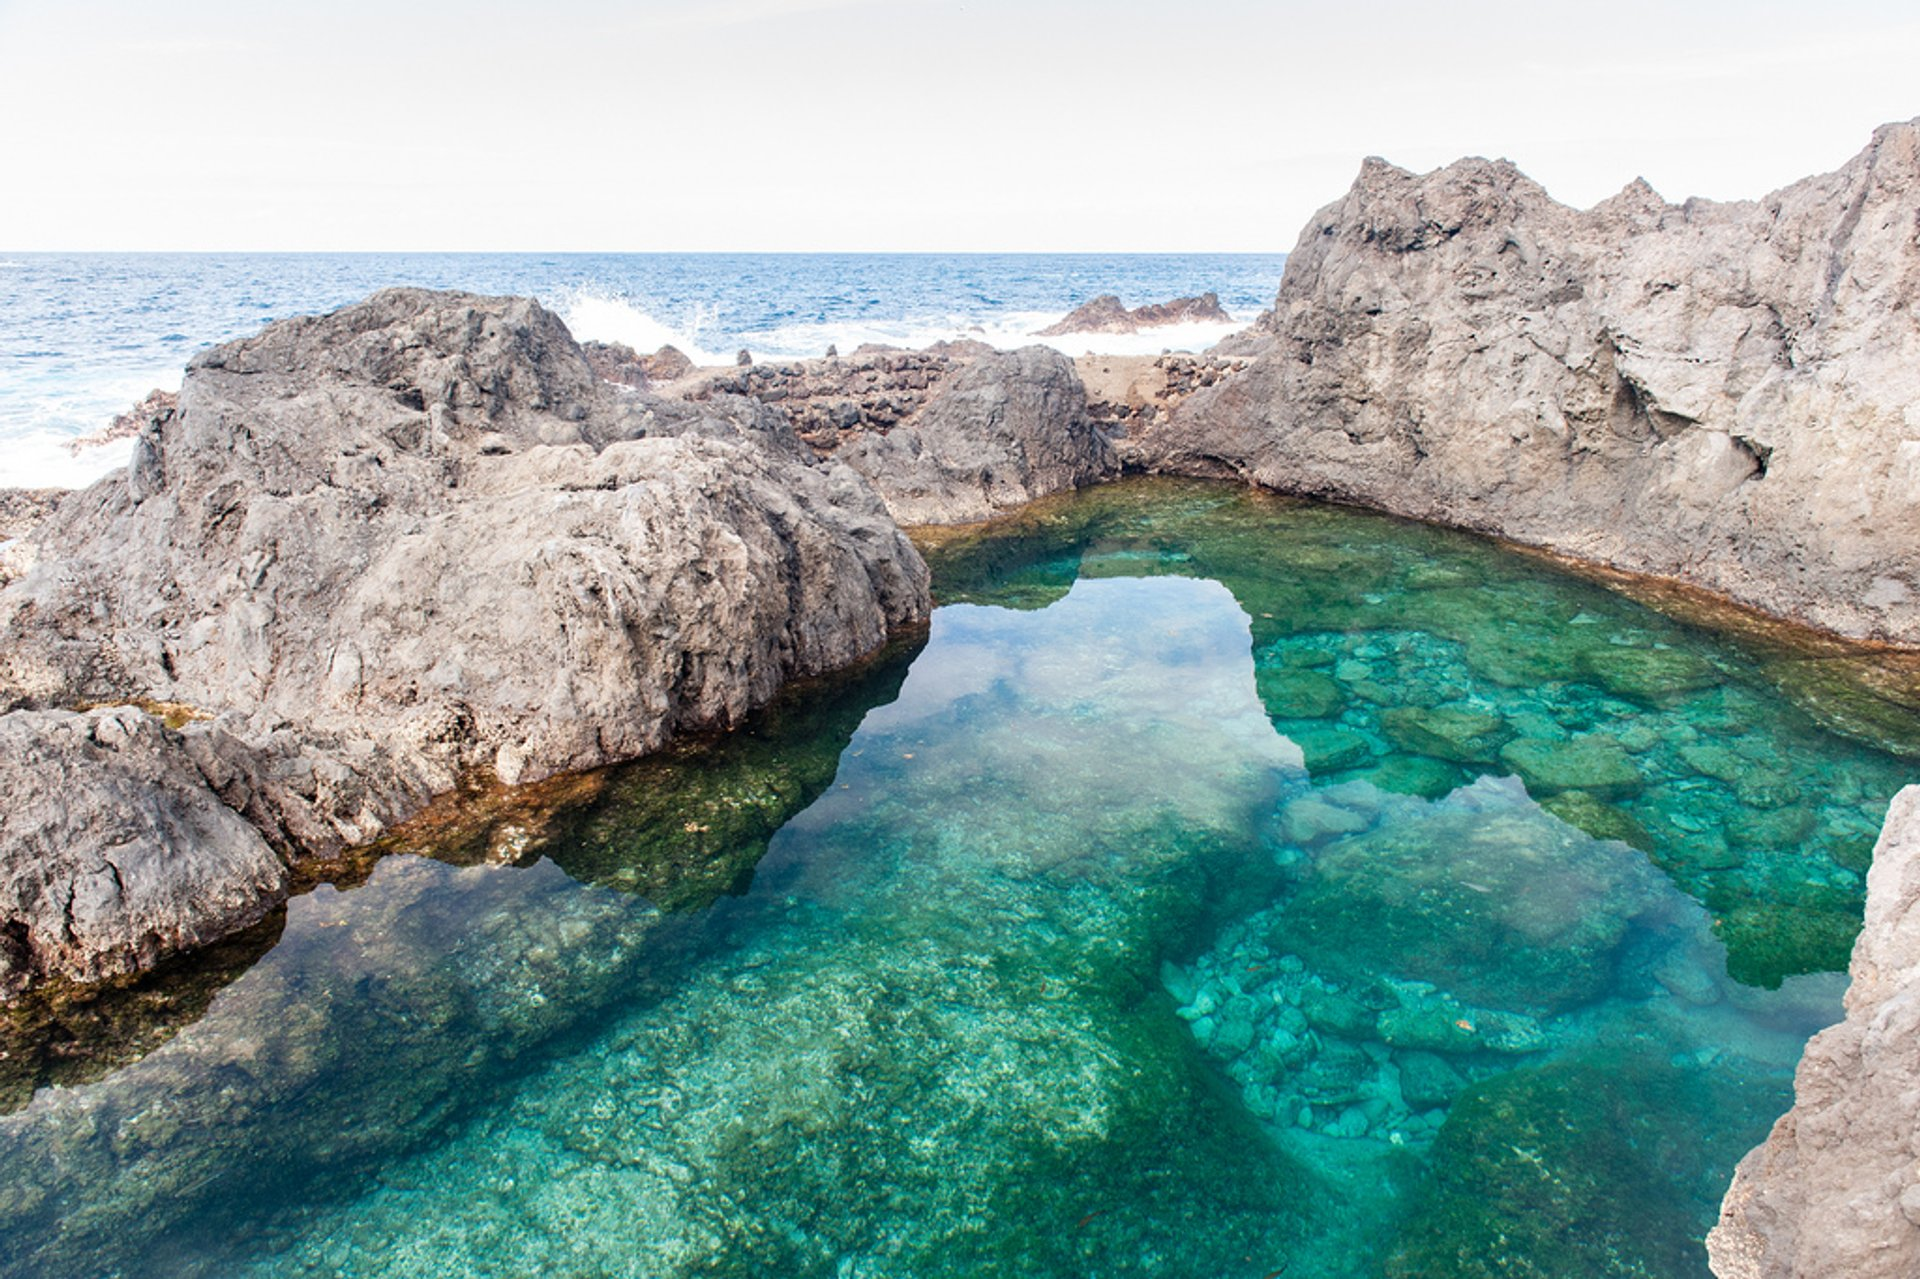 Natural Rock Pools in Canary Islands - Best Season 2020